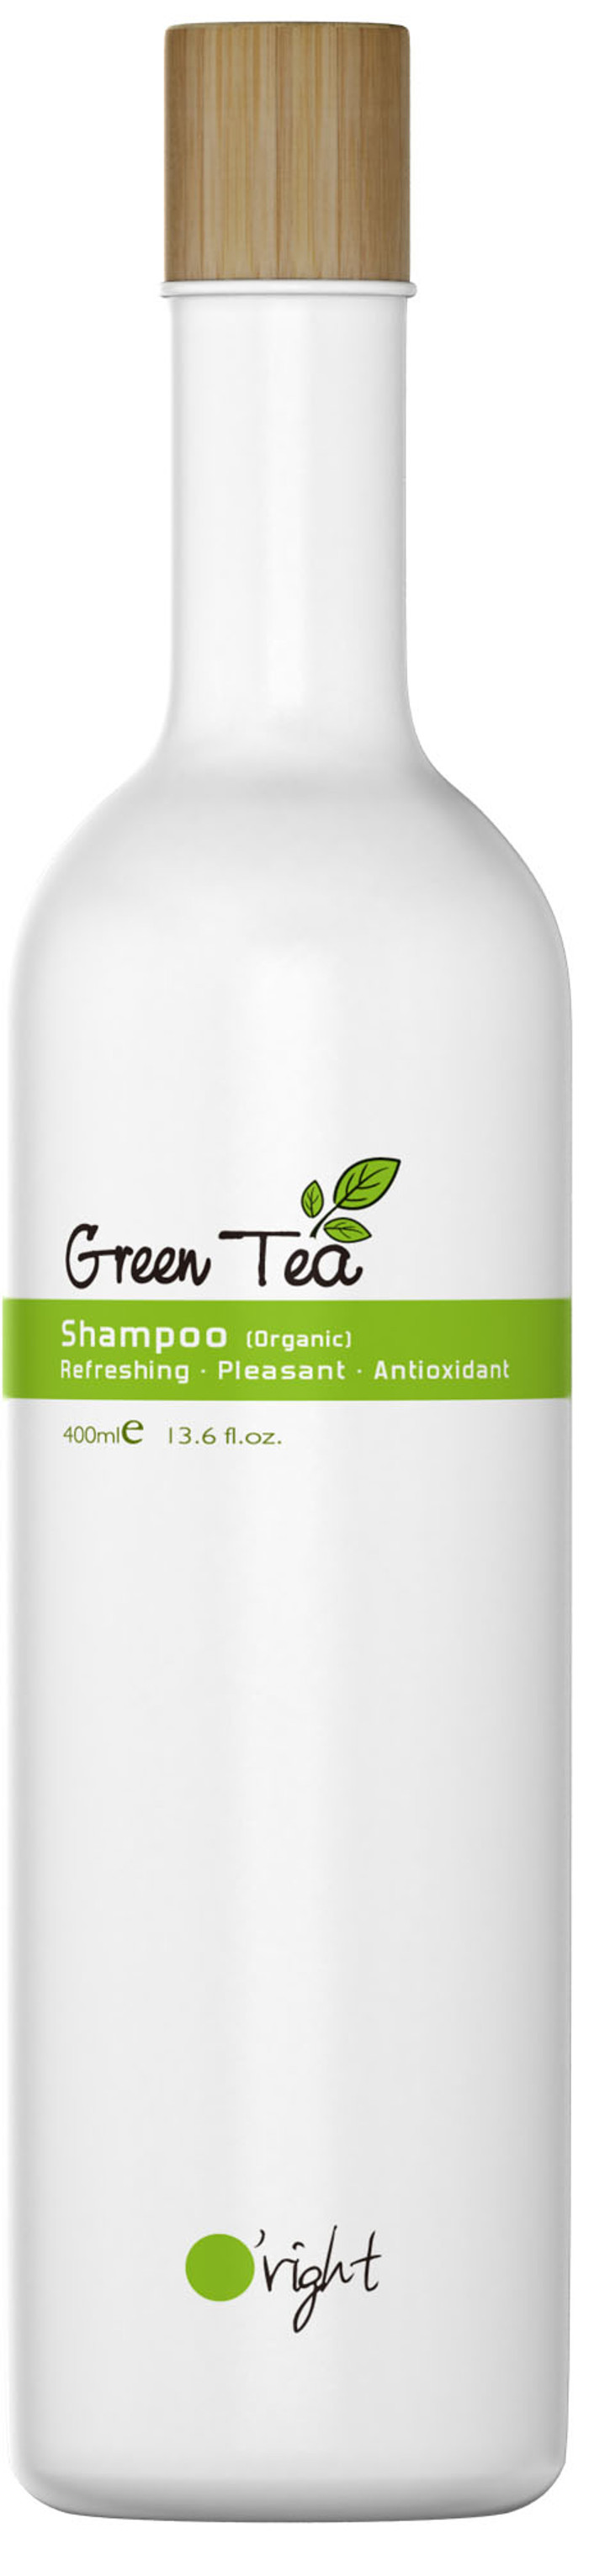 Green Tea Shampoo 400ml